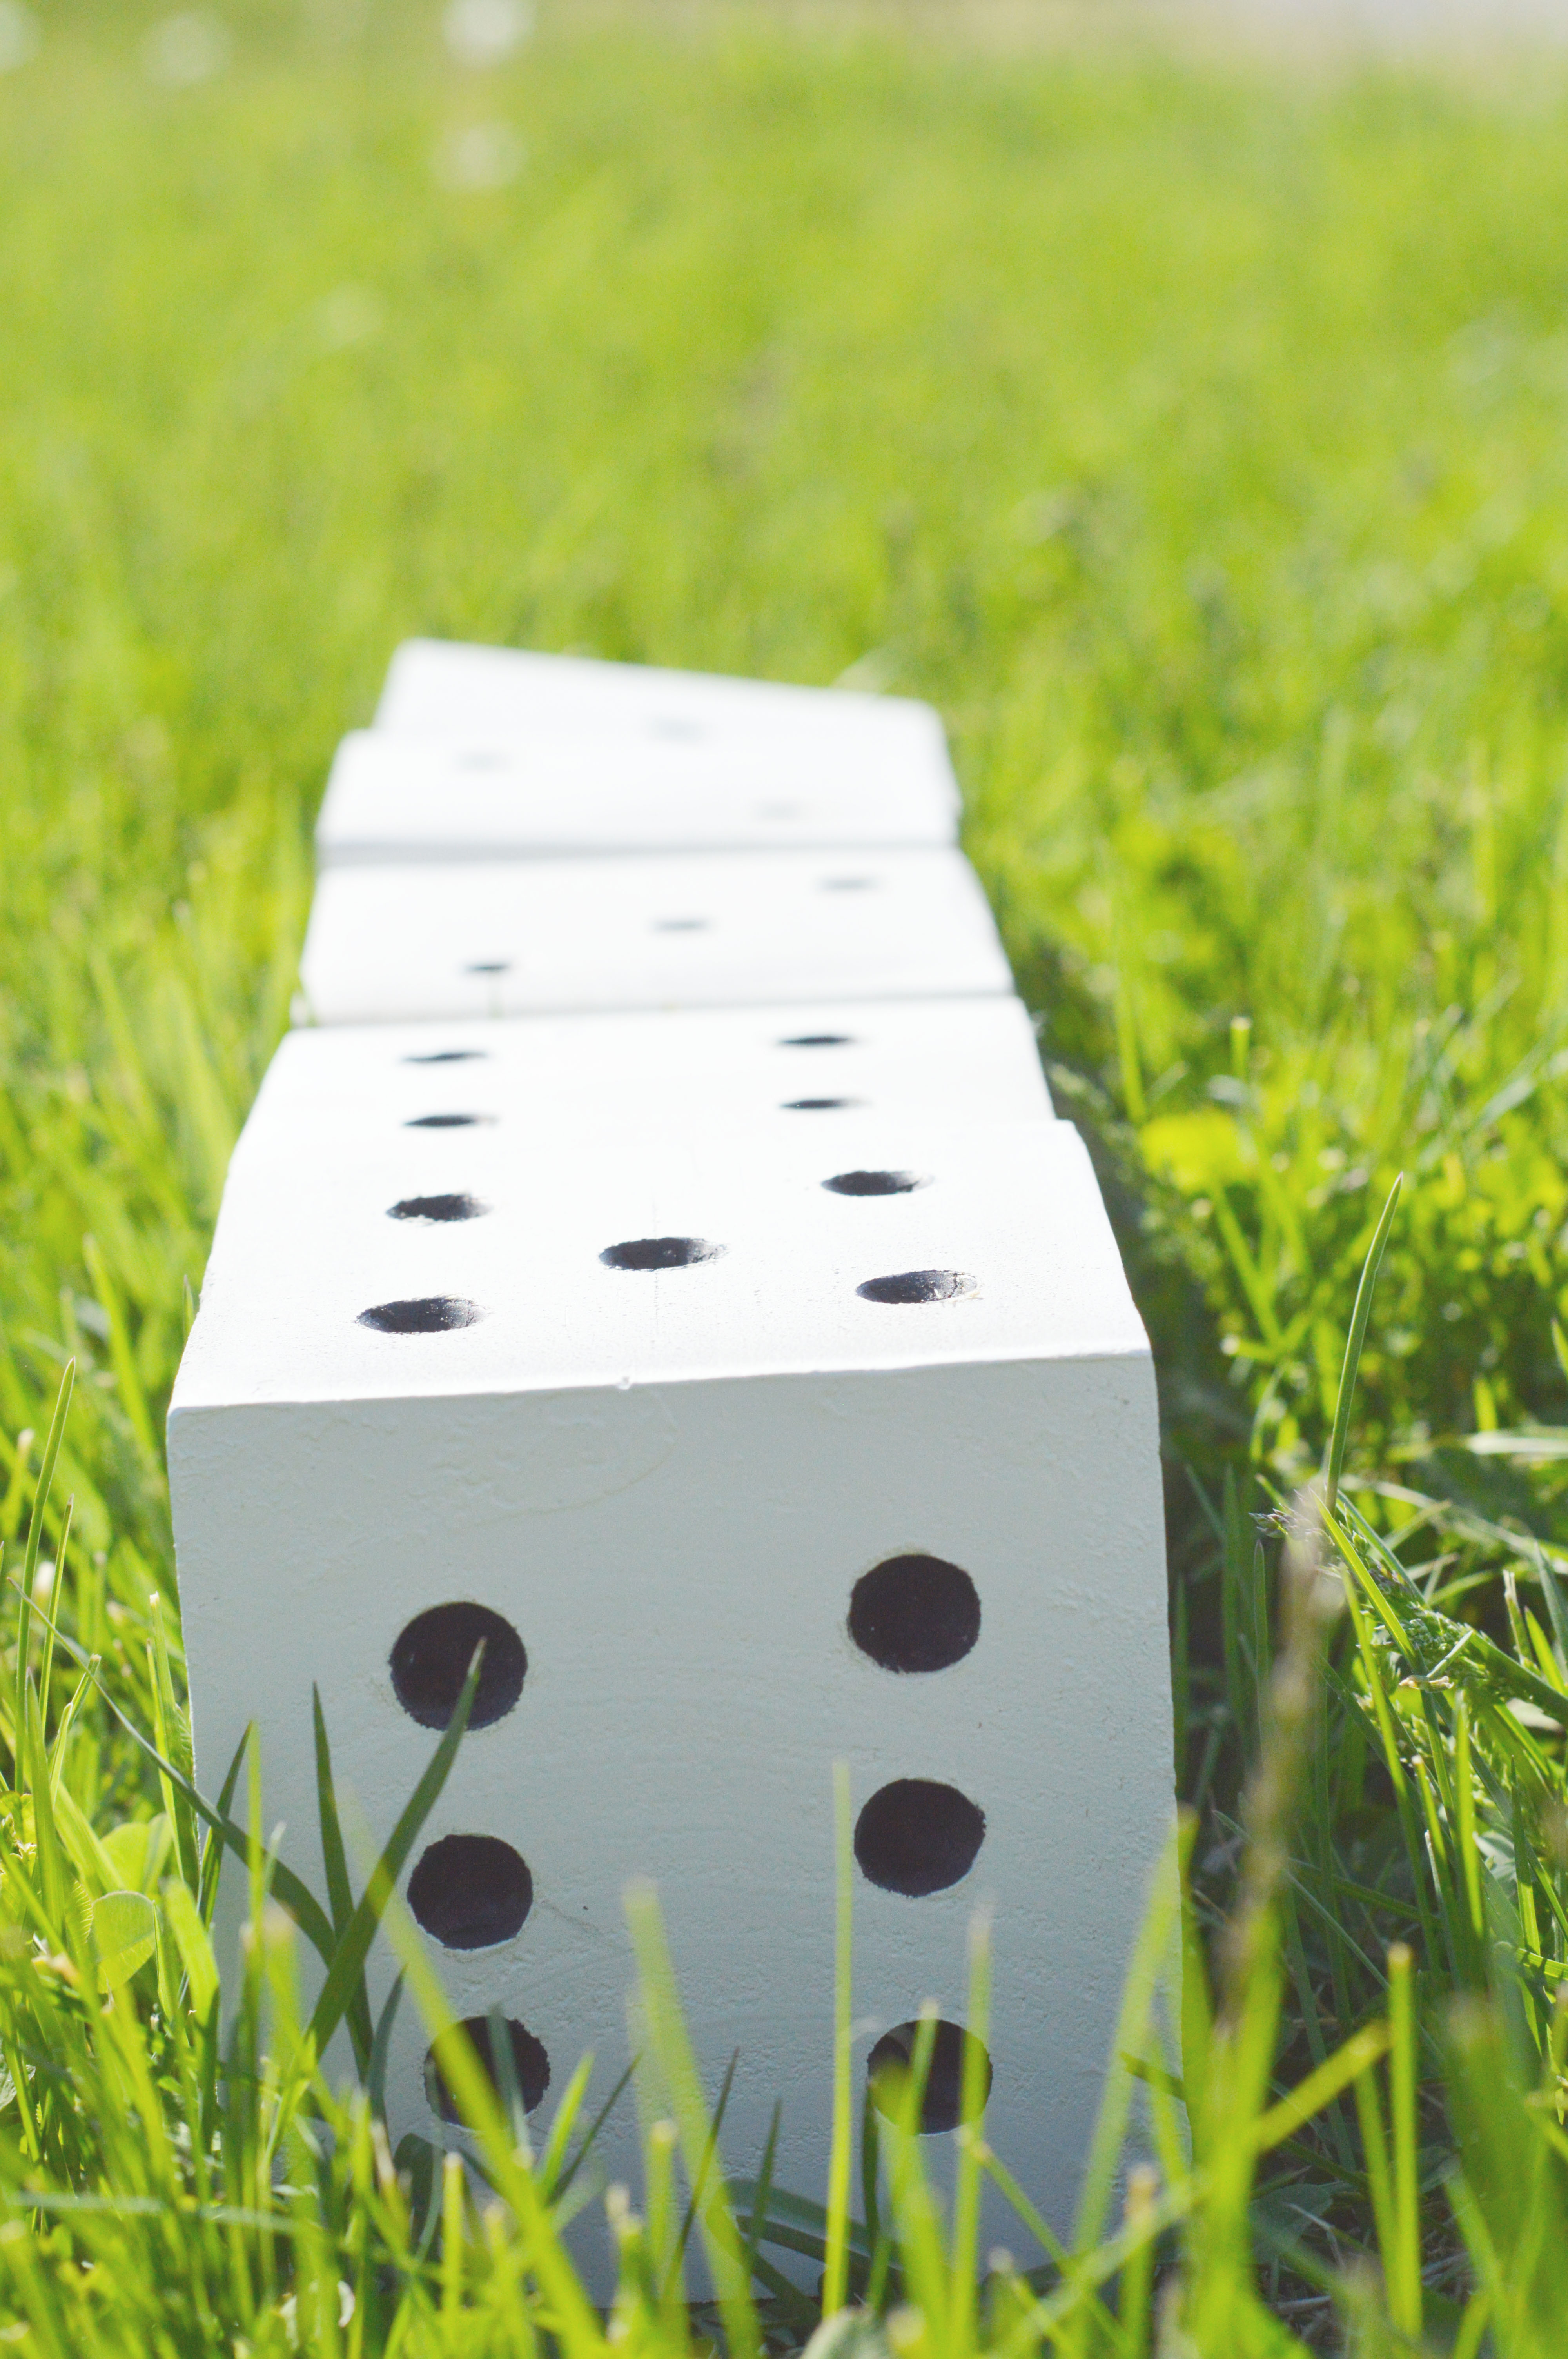 DIY Yard Dice - These DIY Life Size Dice are great for any game that involves dice! They are easy to make and perfect for kids, families, youth groups, etc.